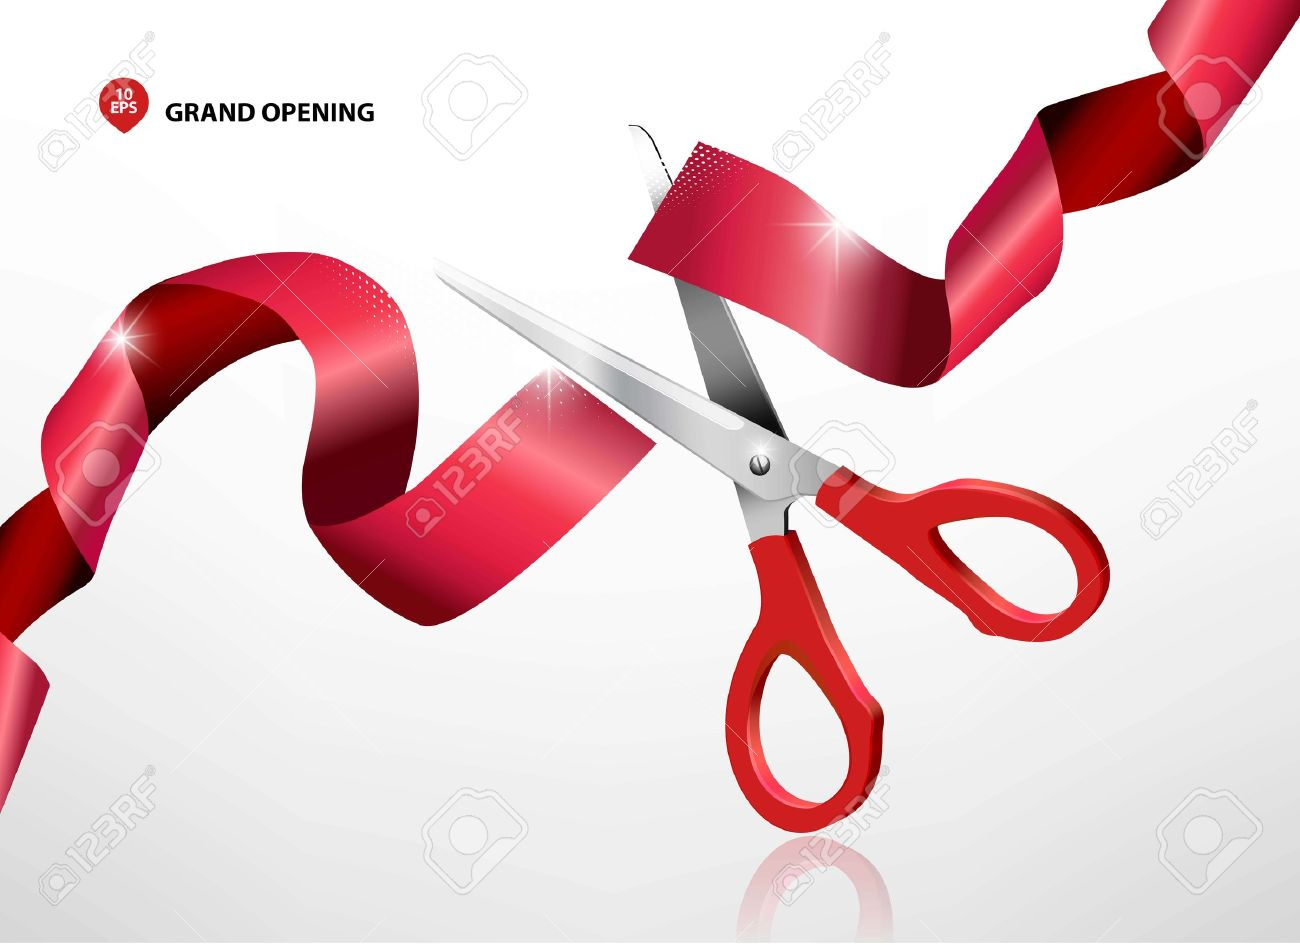 Grand opening with red ribbon and scissors - 57014414